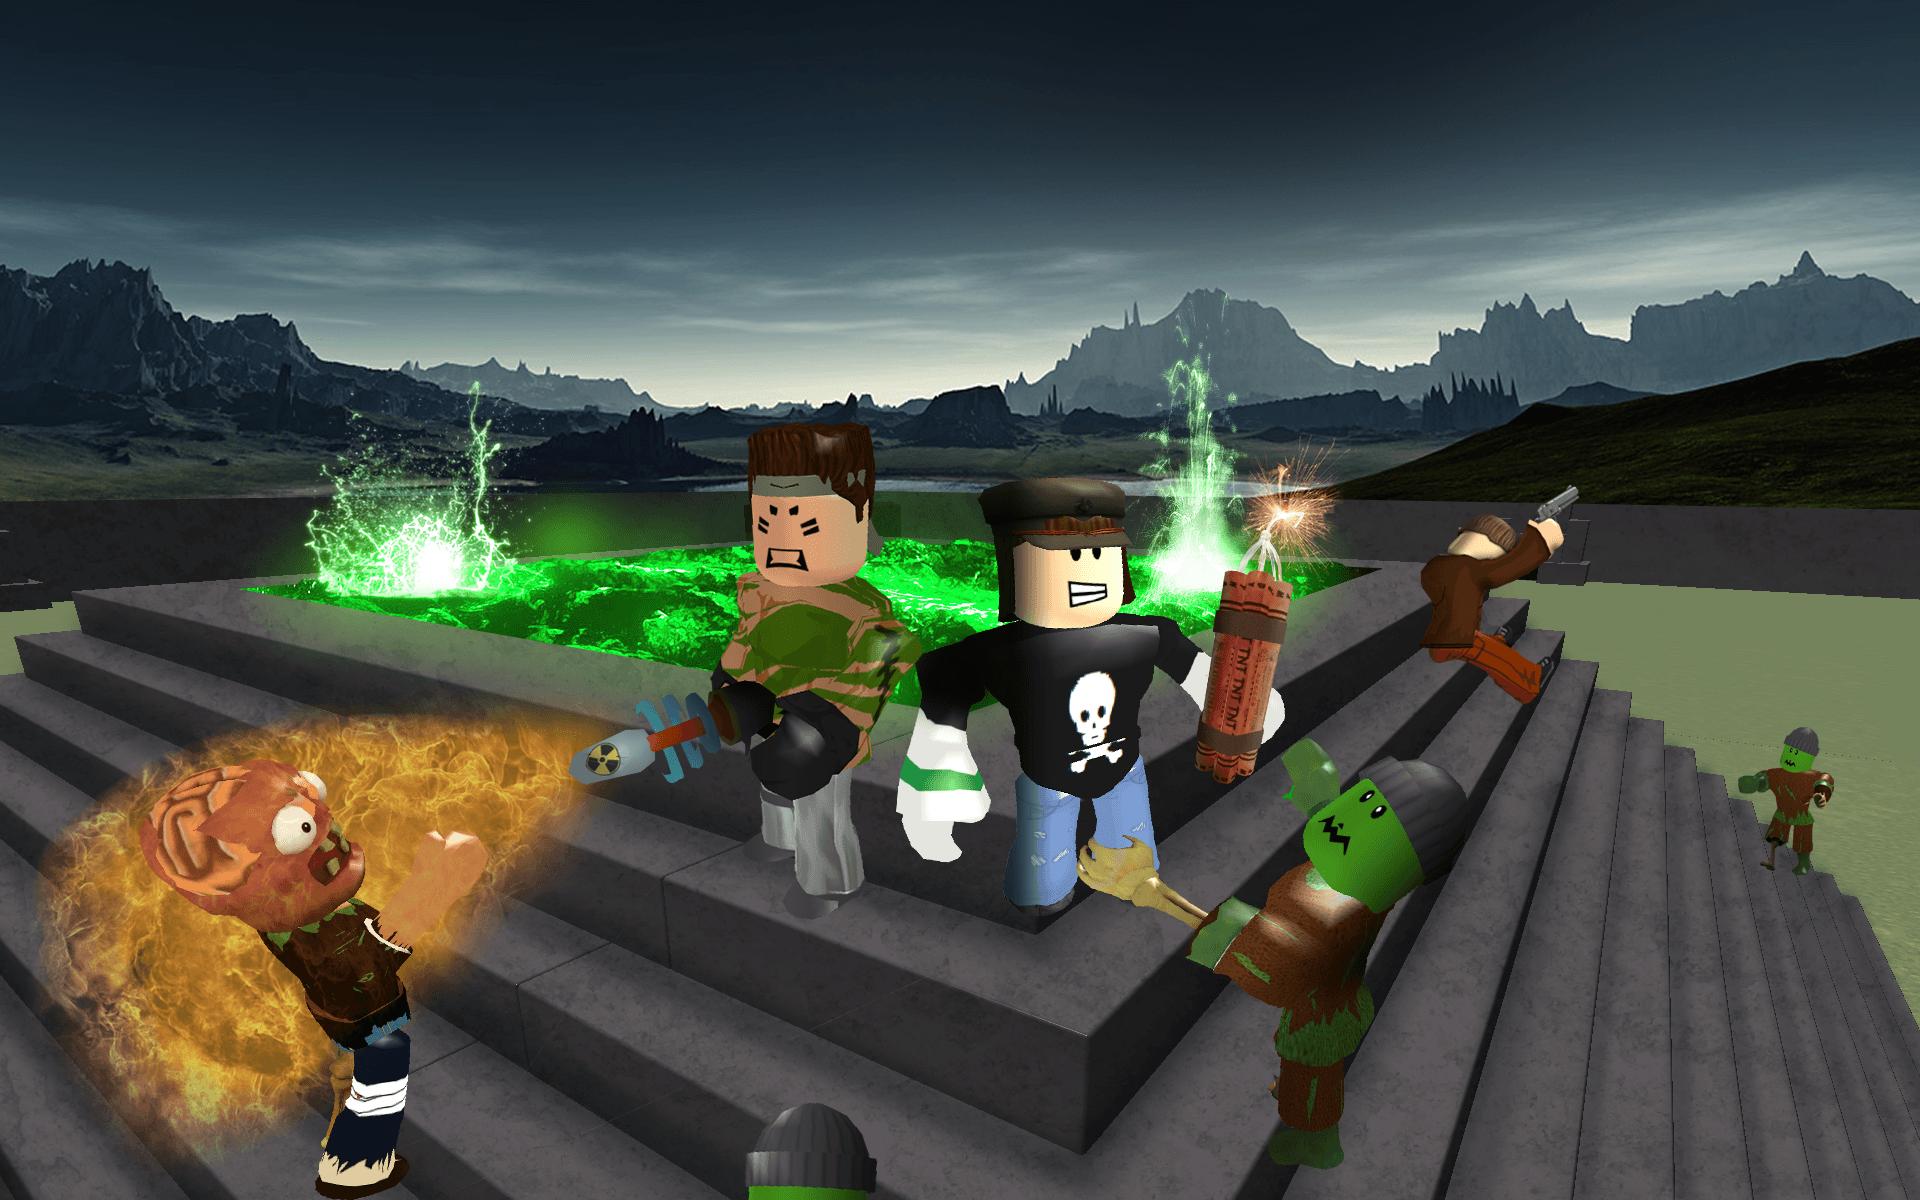 Roblox Wallpaper Backgrounds - Wallpapers